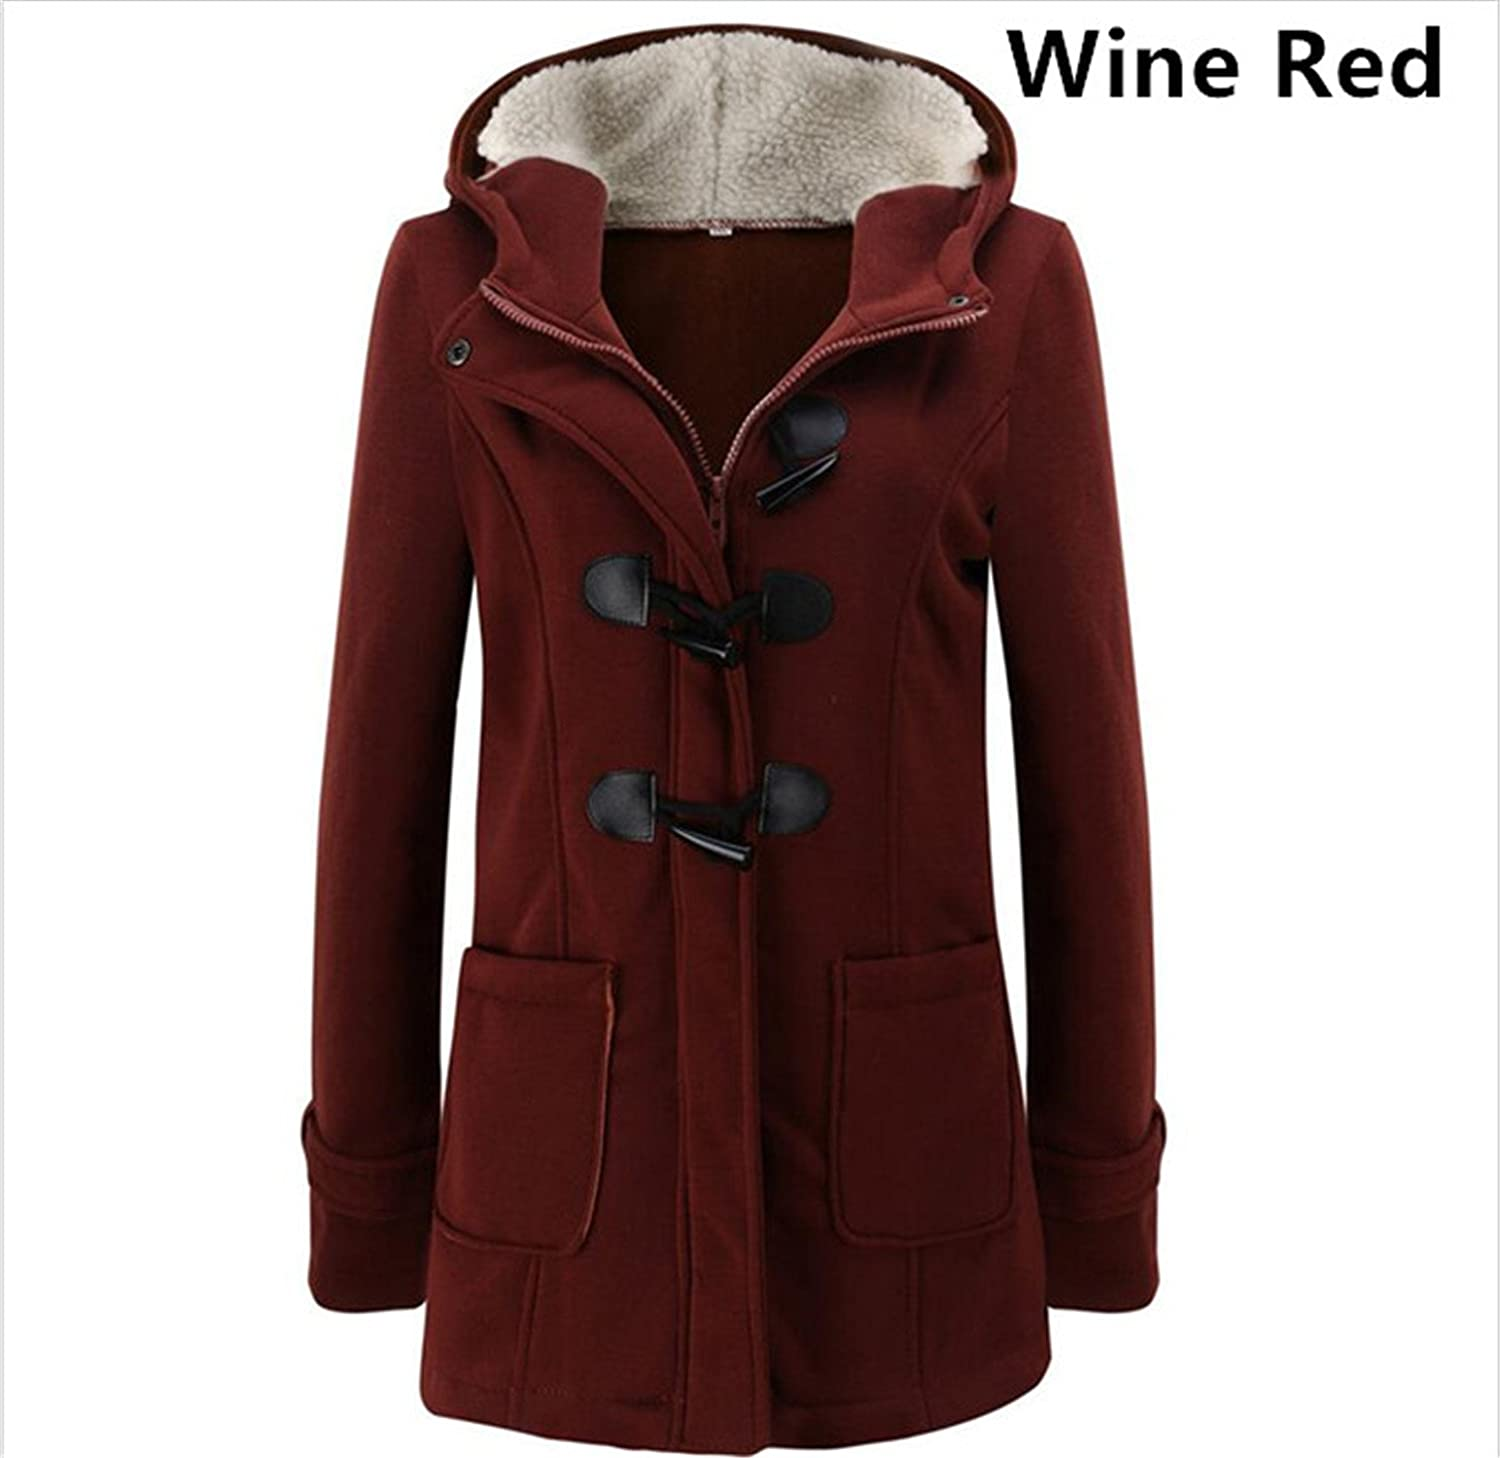 Reinhar New Fashion Autumn Winter Women Wool Blend Jacket Hooded Zipper Coat Horn Button Solid Plus Size Clothes for Female